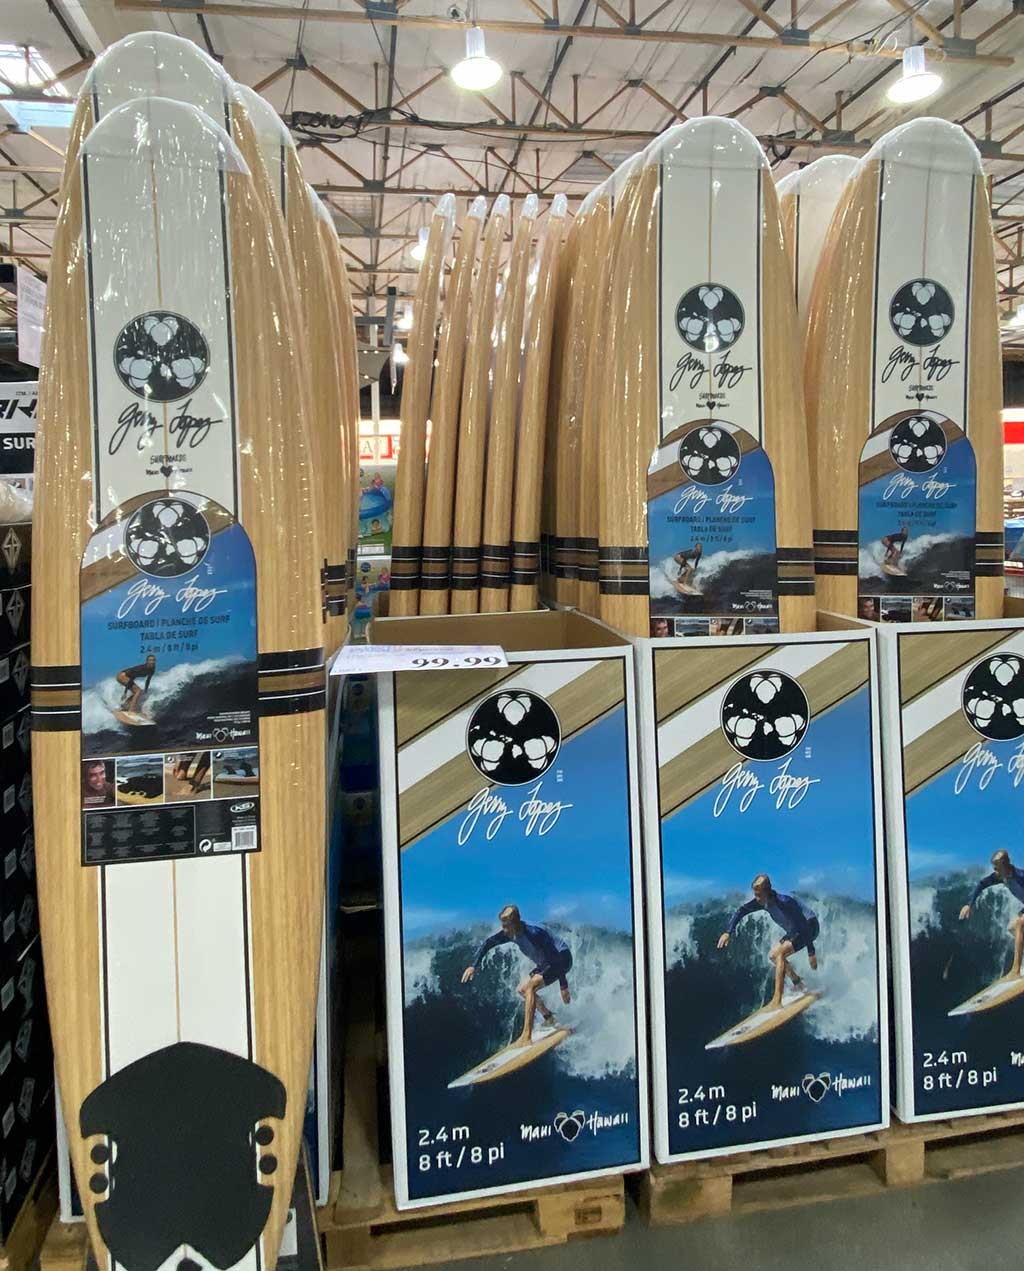 The Gerry Lopez 8' Foam Surfboard at Costco